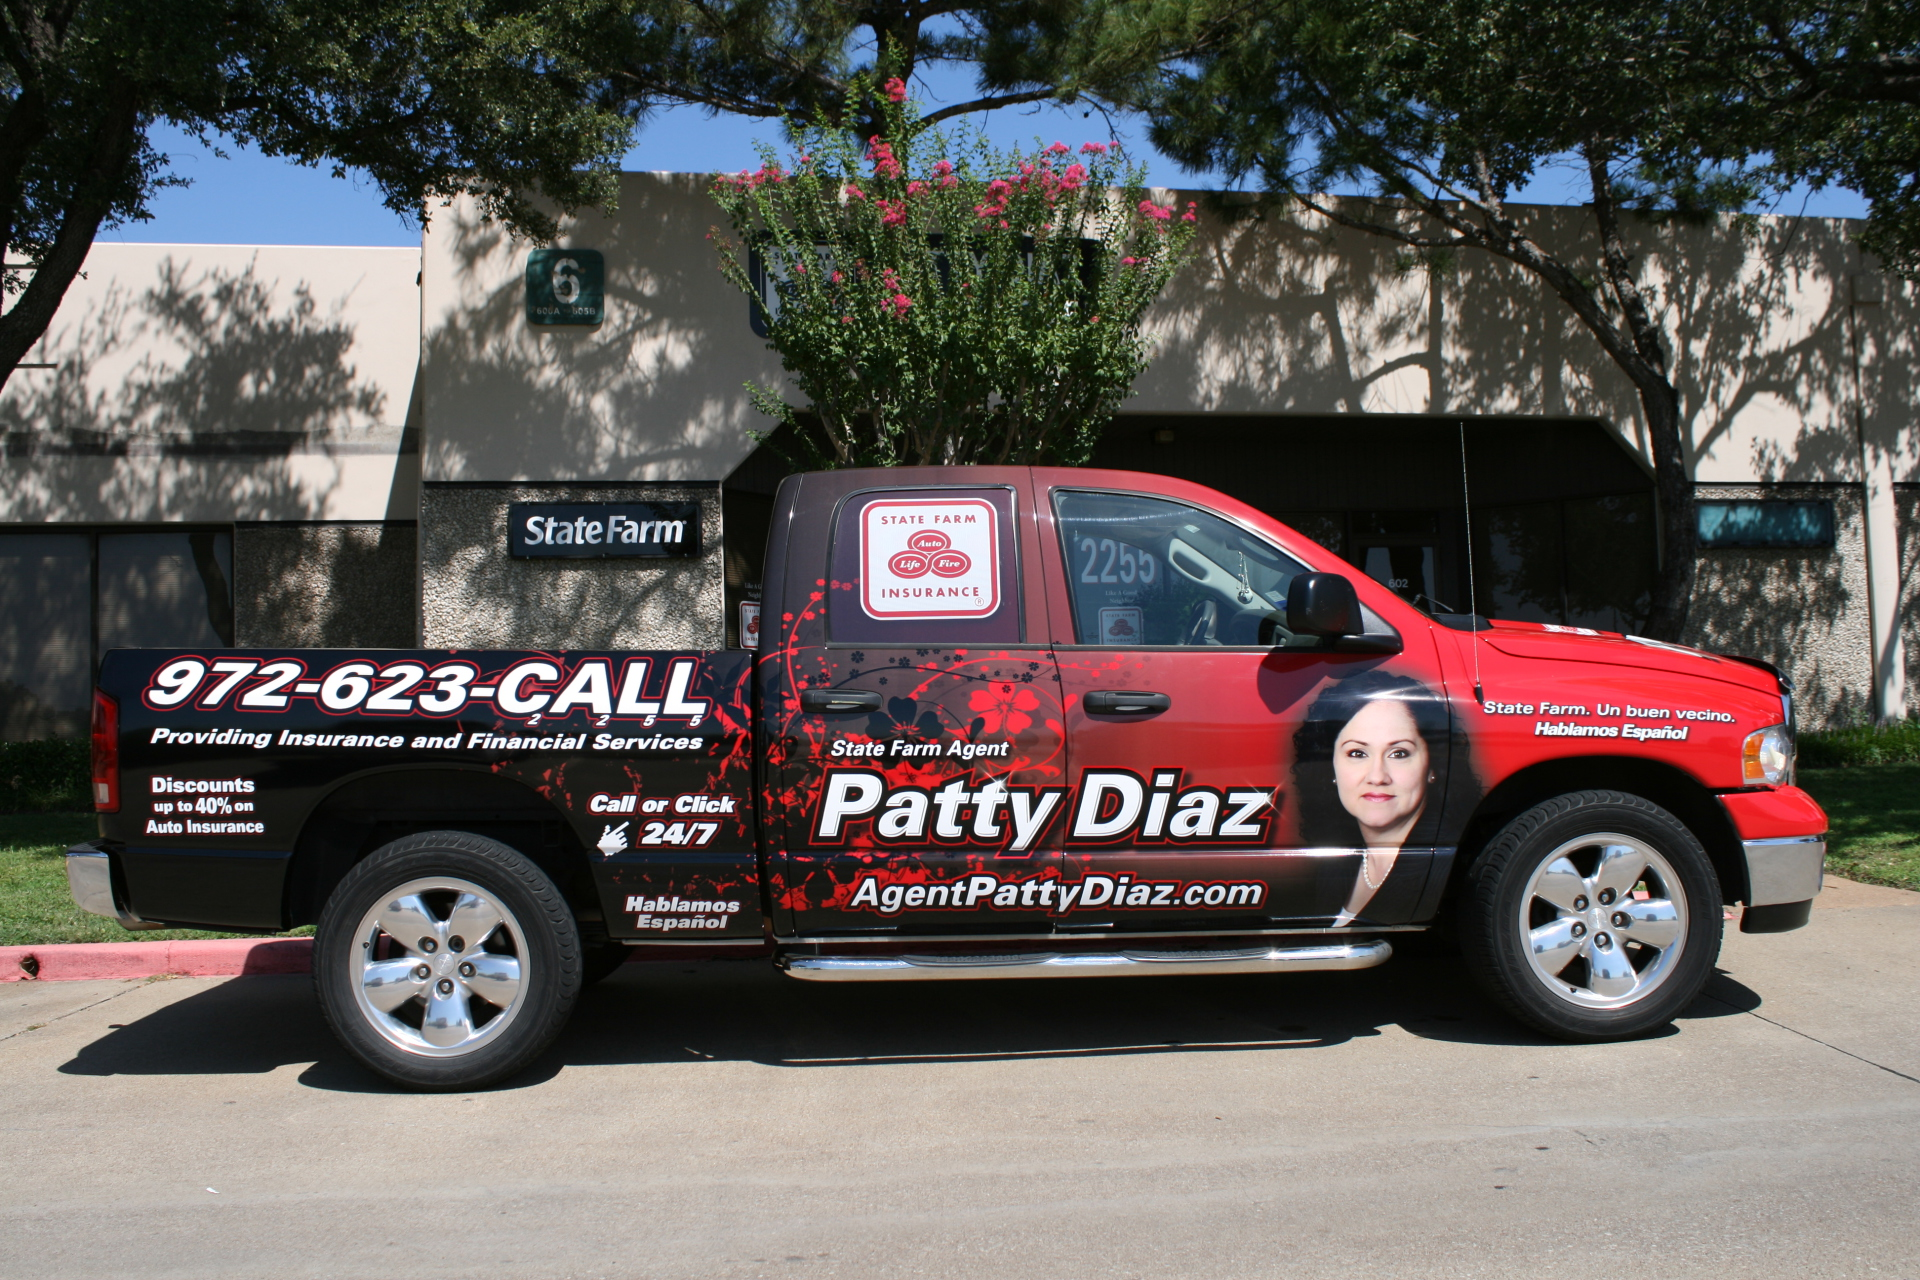 State Farm Agent Patty Diaz, Vehicle wrap Dallas TX, State Farm Vehicle Wrap